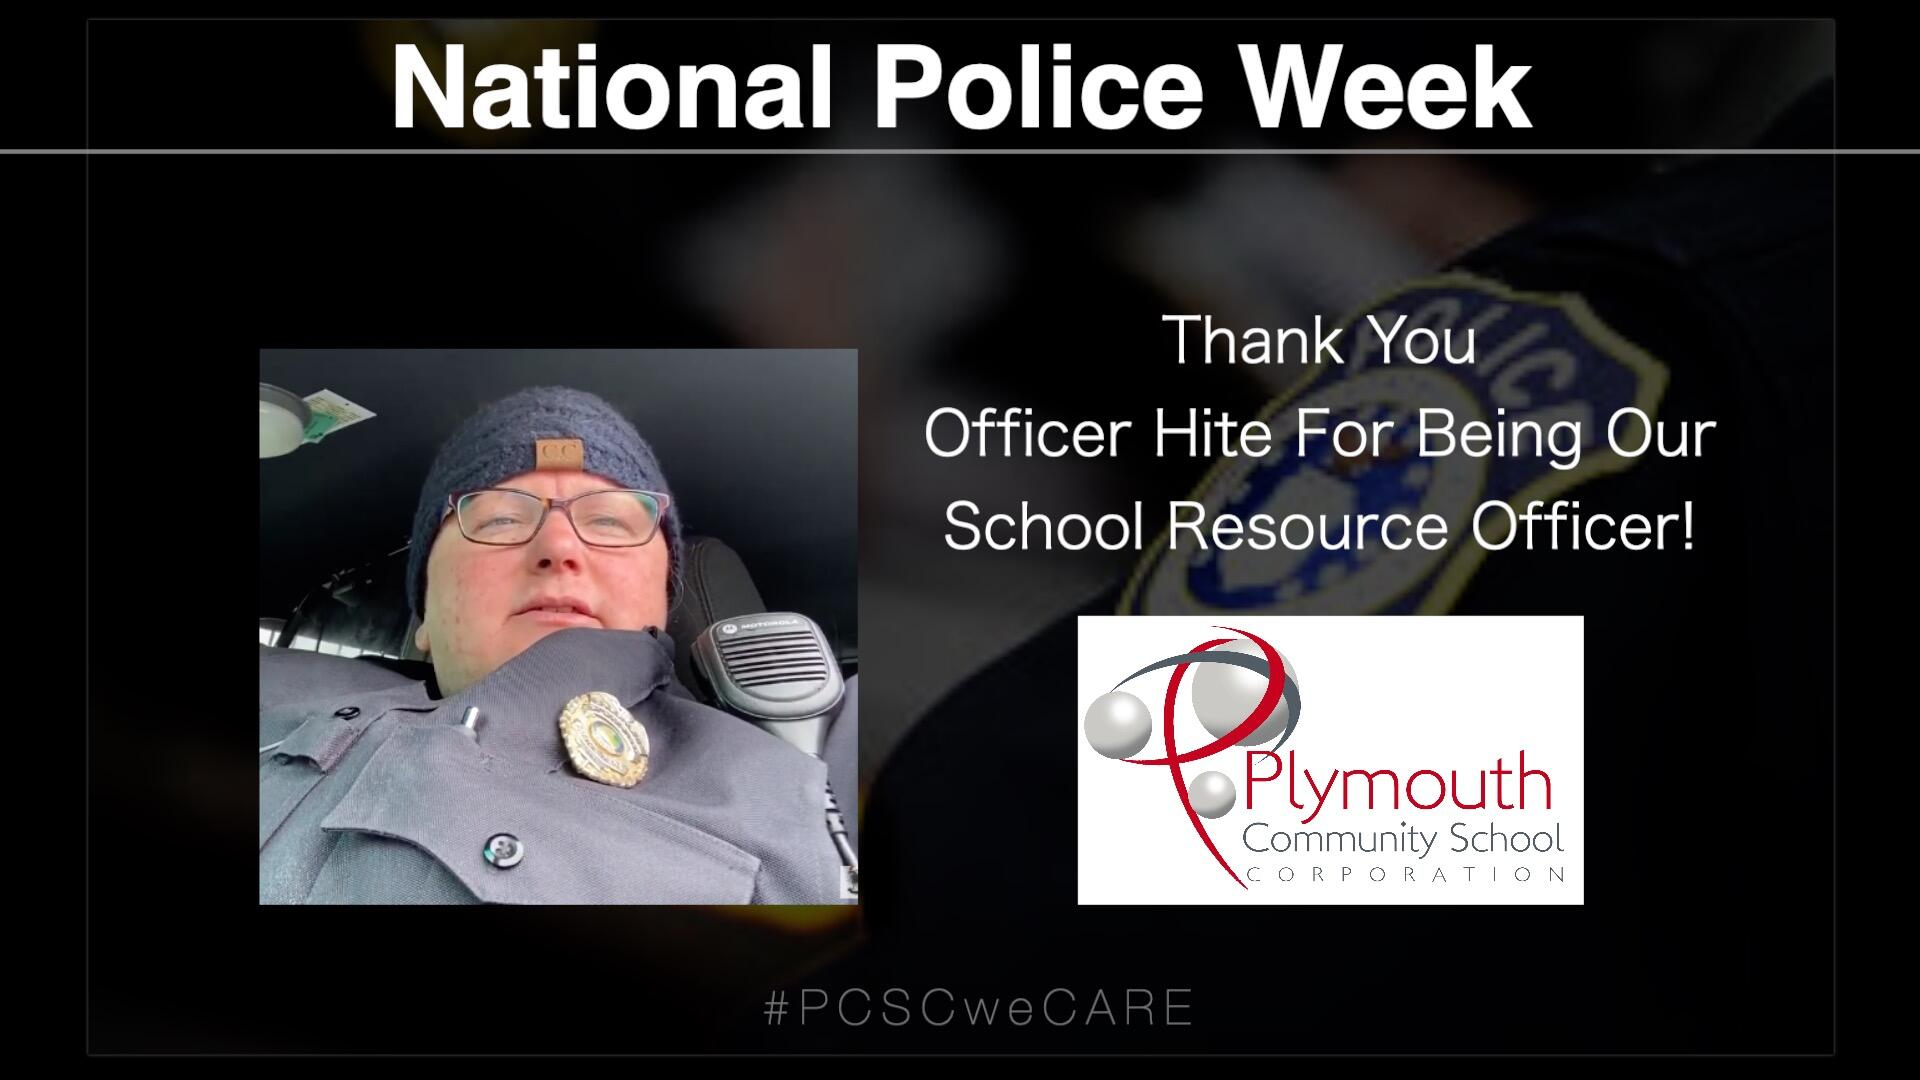 National Police Week- with PCSC logo-Thank you Office Hite for being our school resource officer!